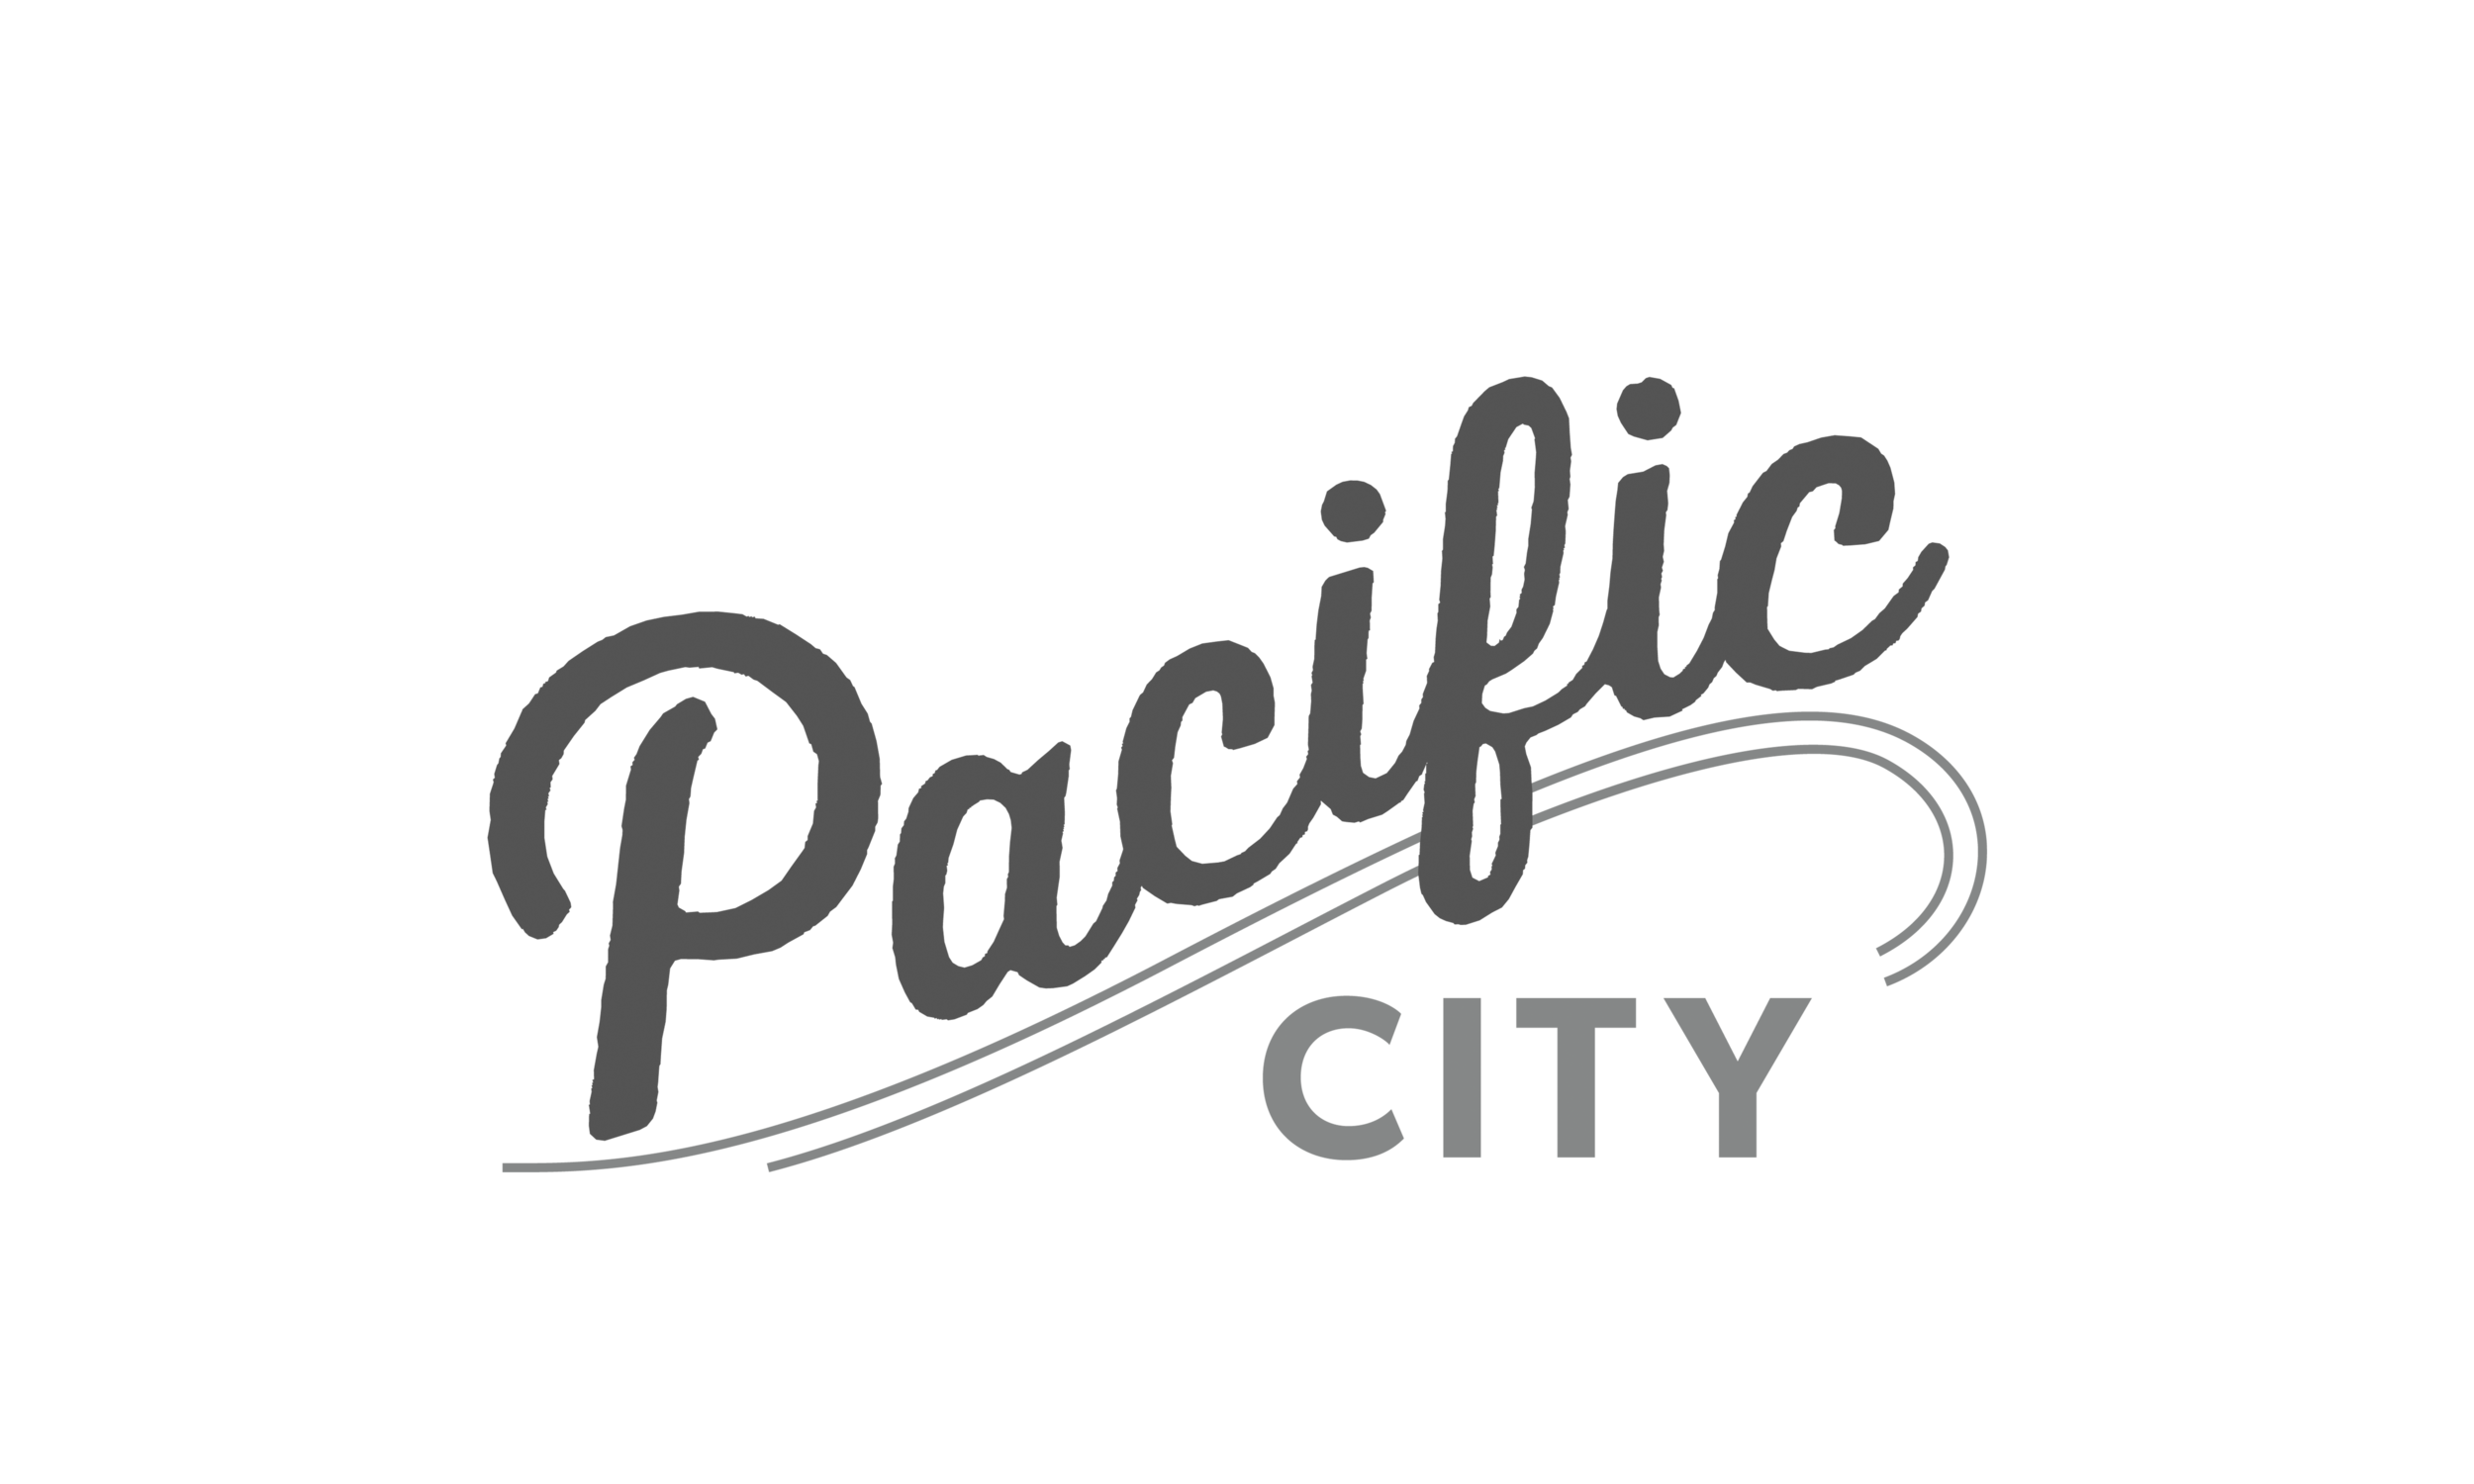 Pacific City.png